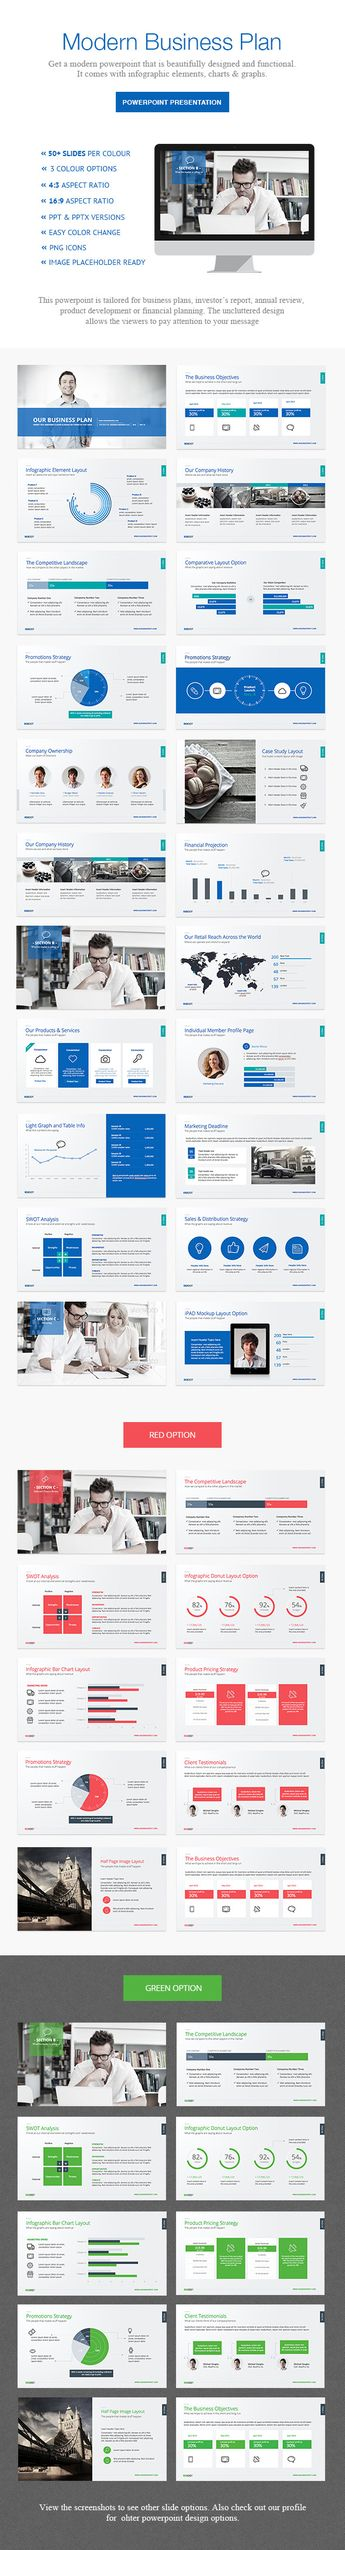 Business plan powerpoint business planning presentation slides business plan powerpoint toneelgroepblik Gallery